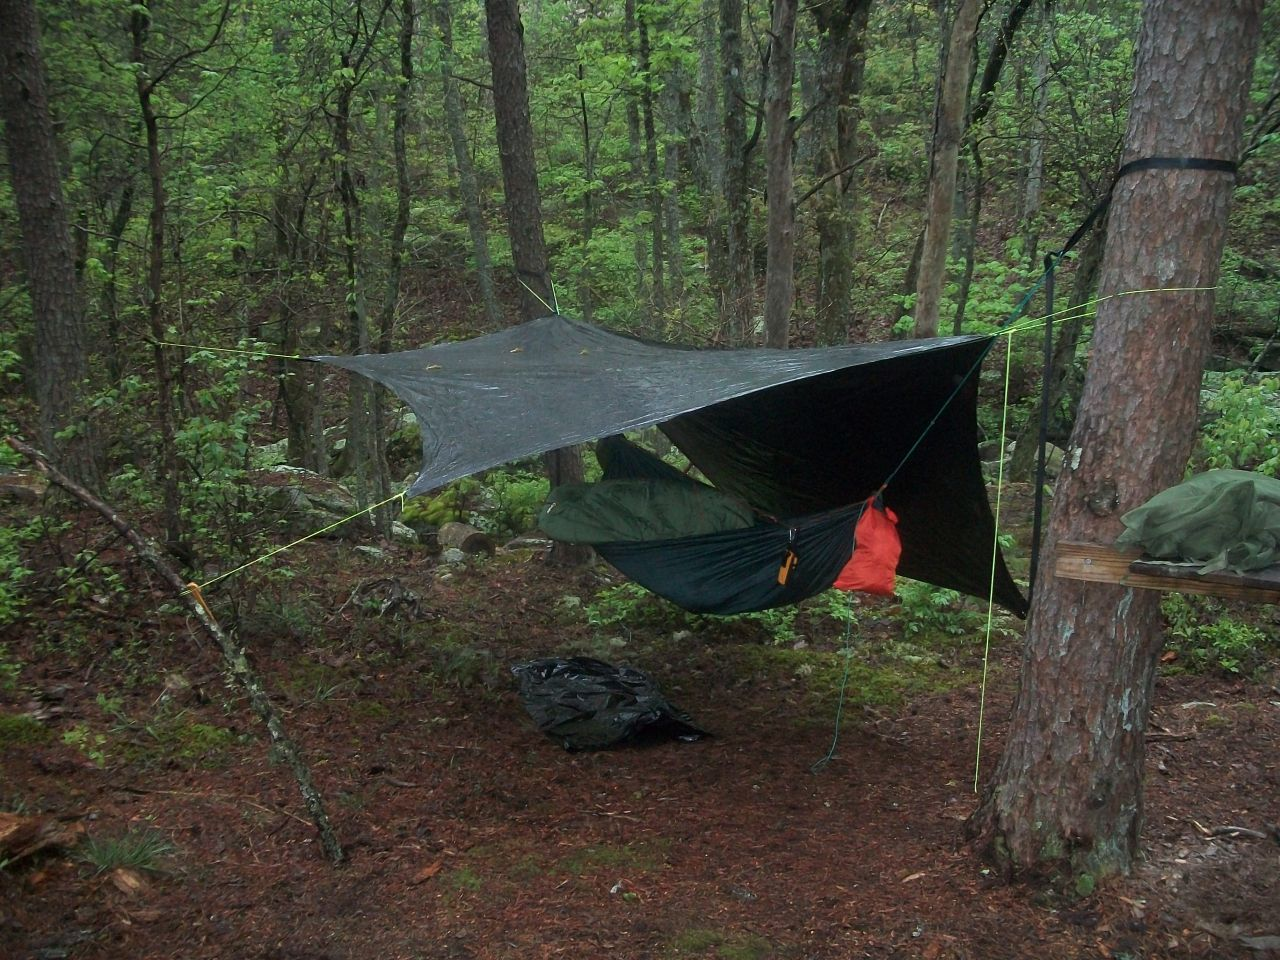 My First Hang - With My Diy Tarp.